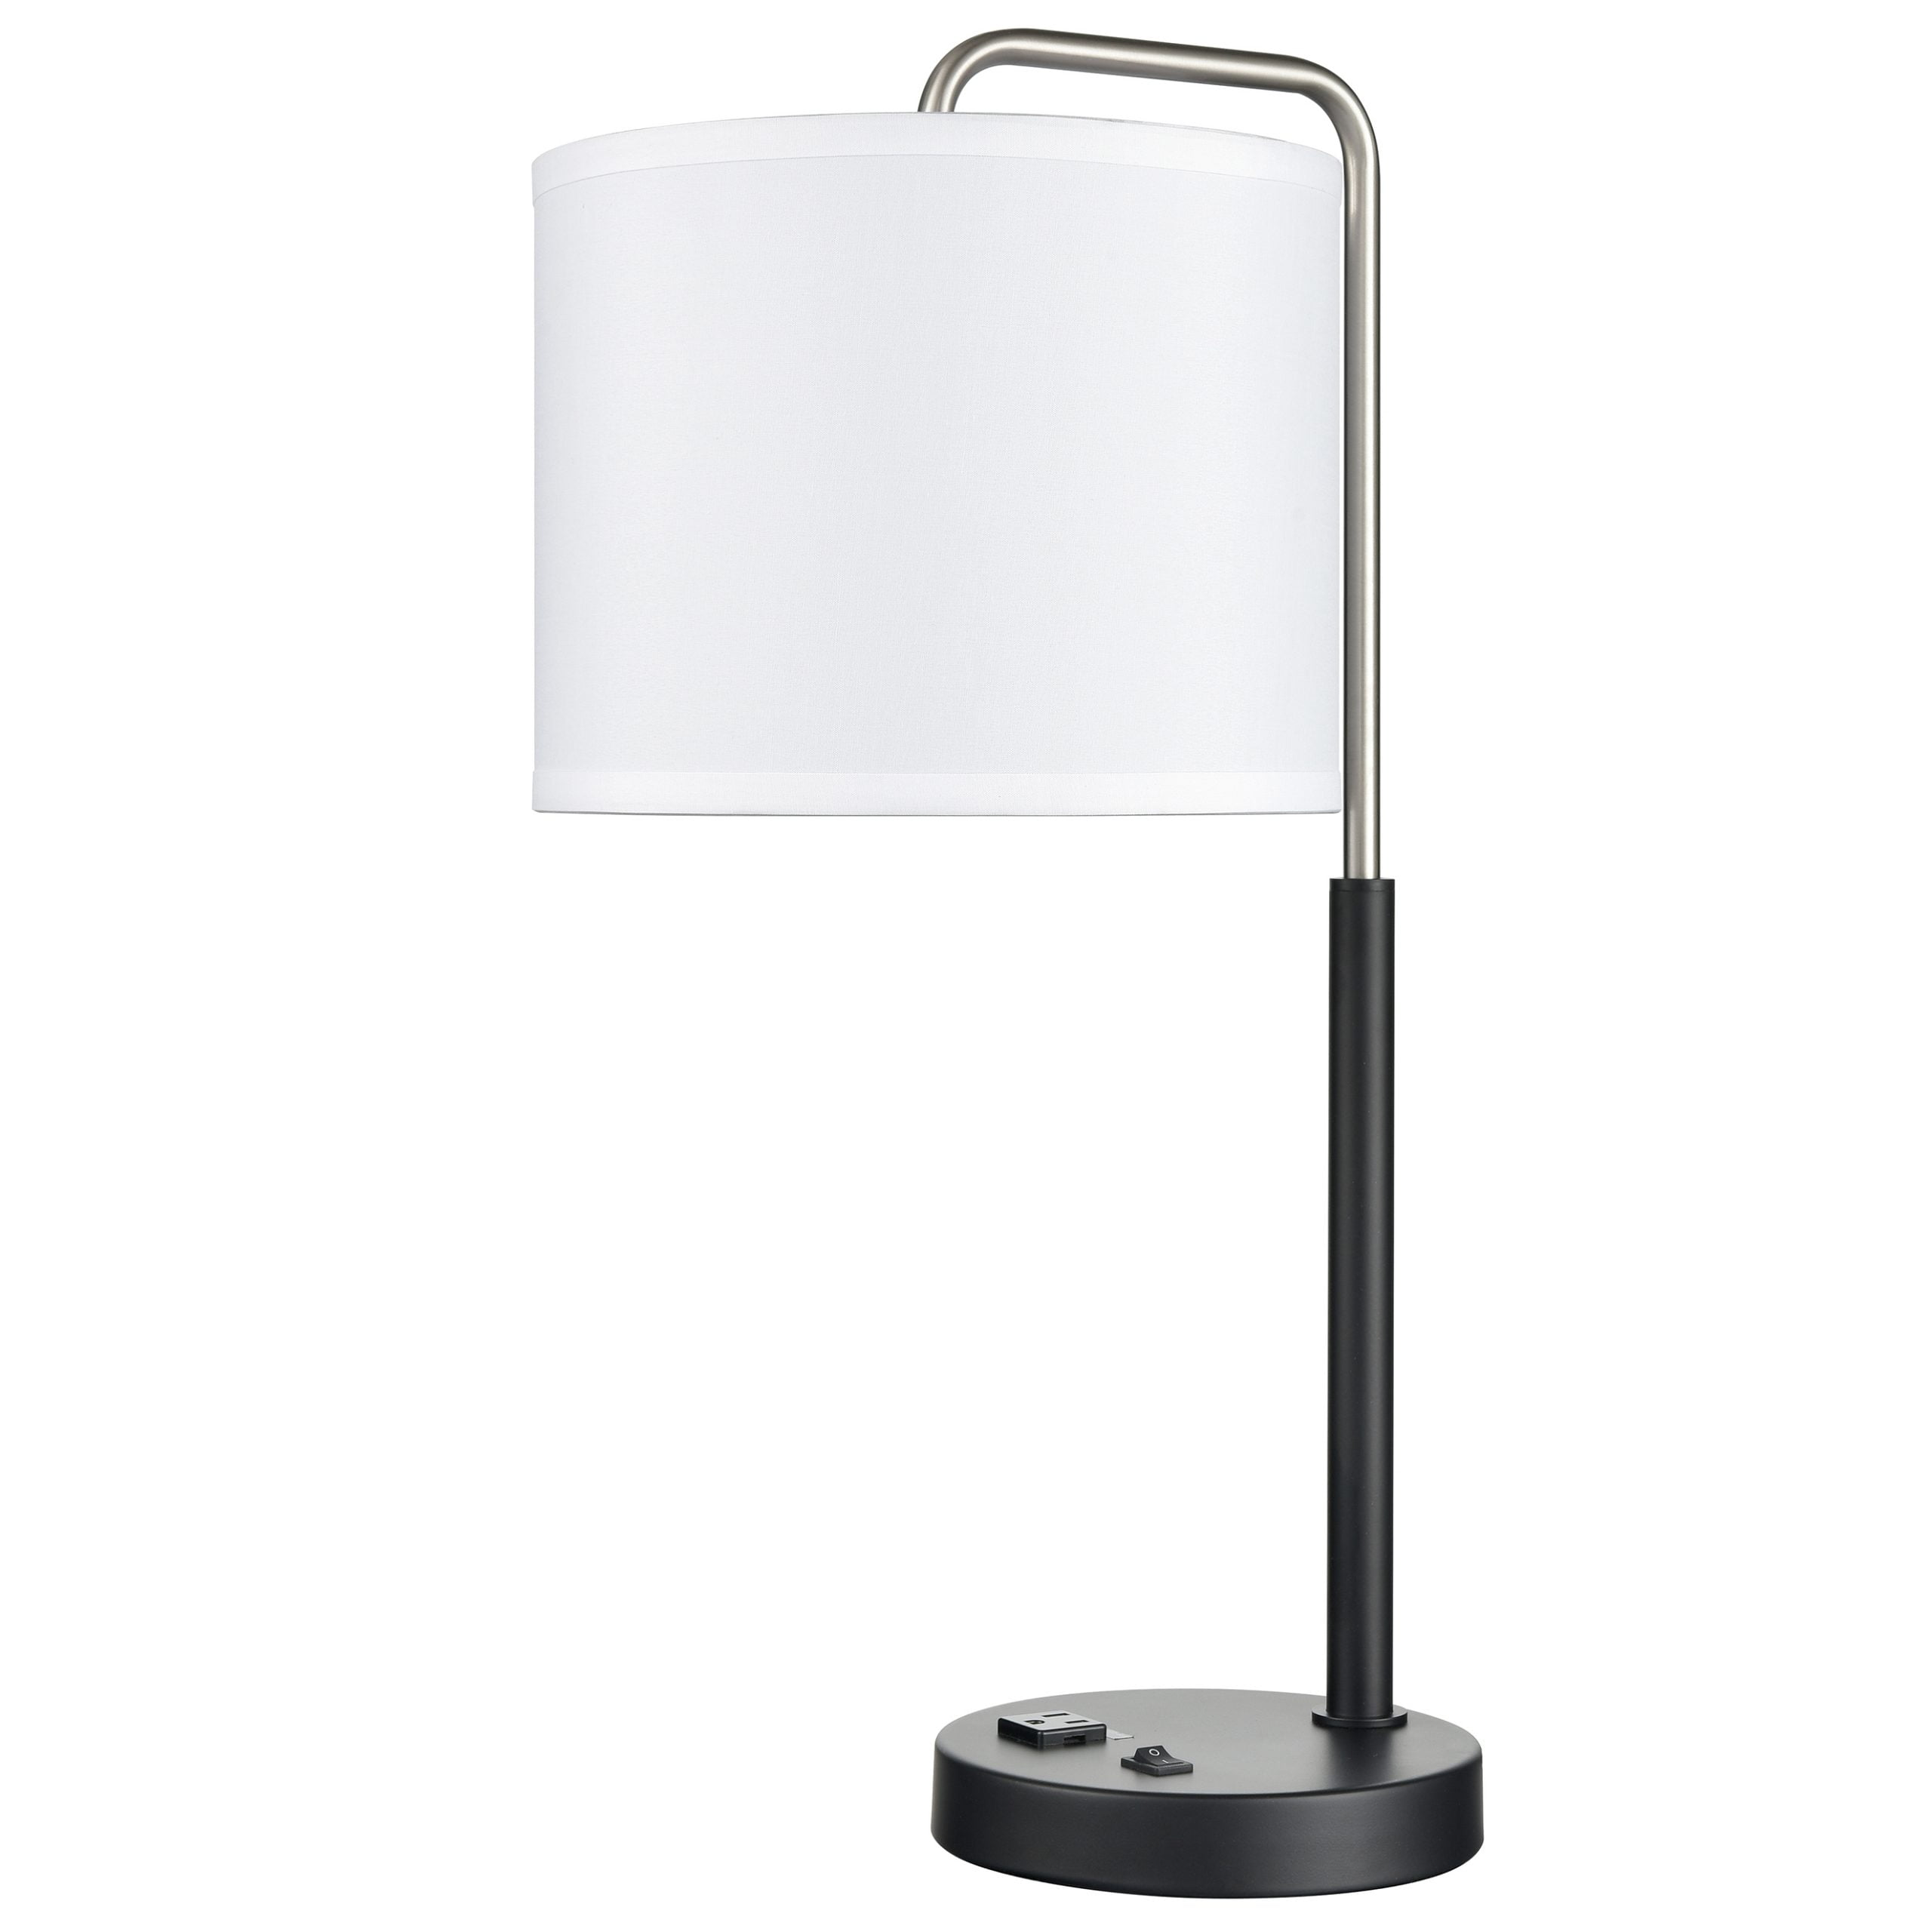 Valeria Single Table Lamp with 1 Outlet & 1 USB